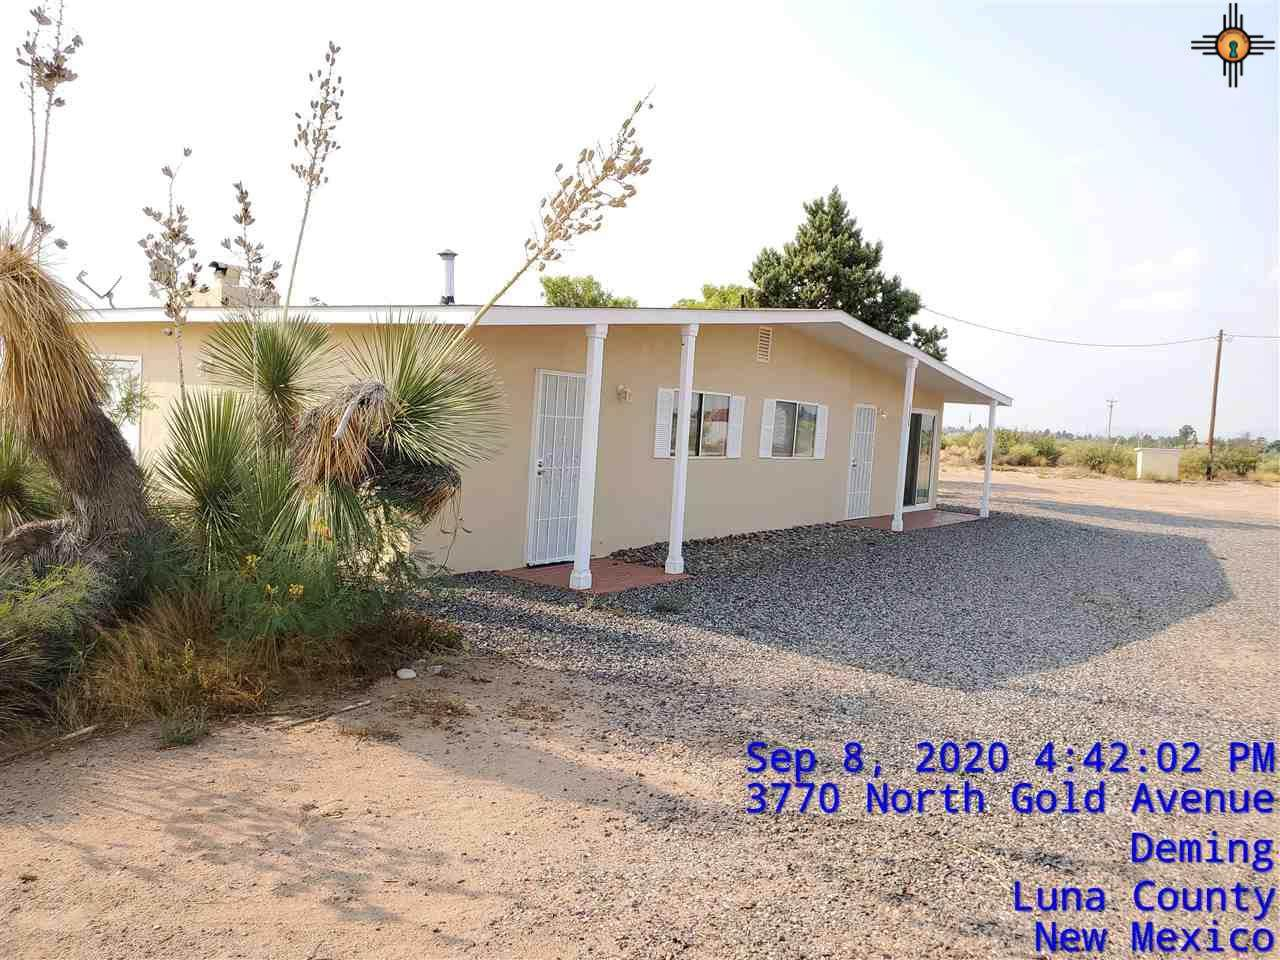 3770 Silver City Hwy Nw - Photo 1